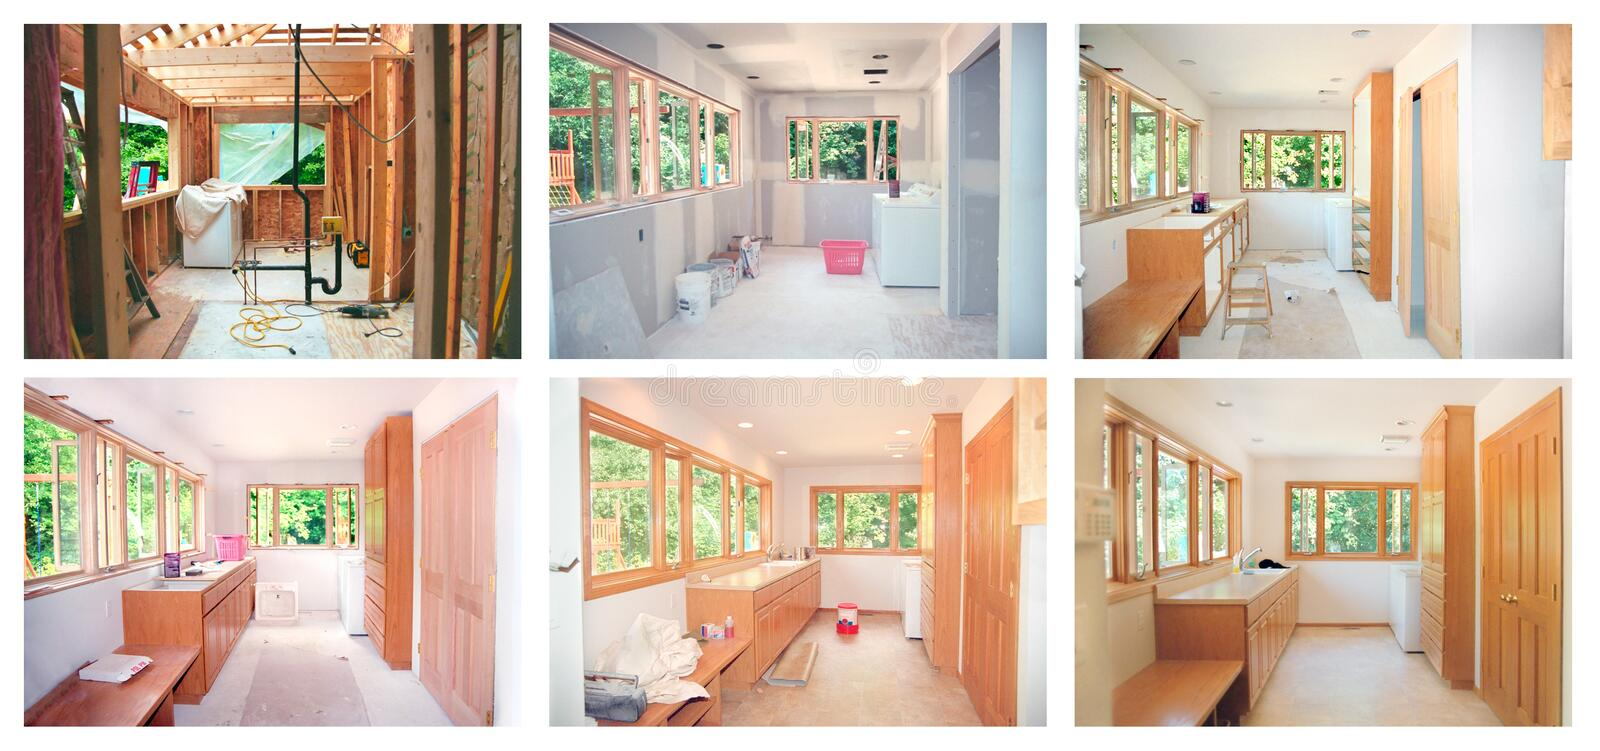 Remodeling royalty free stock photos